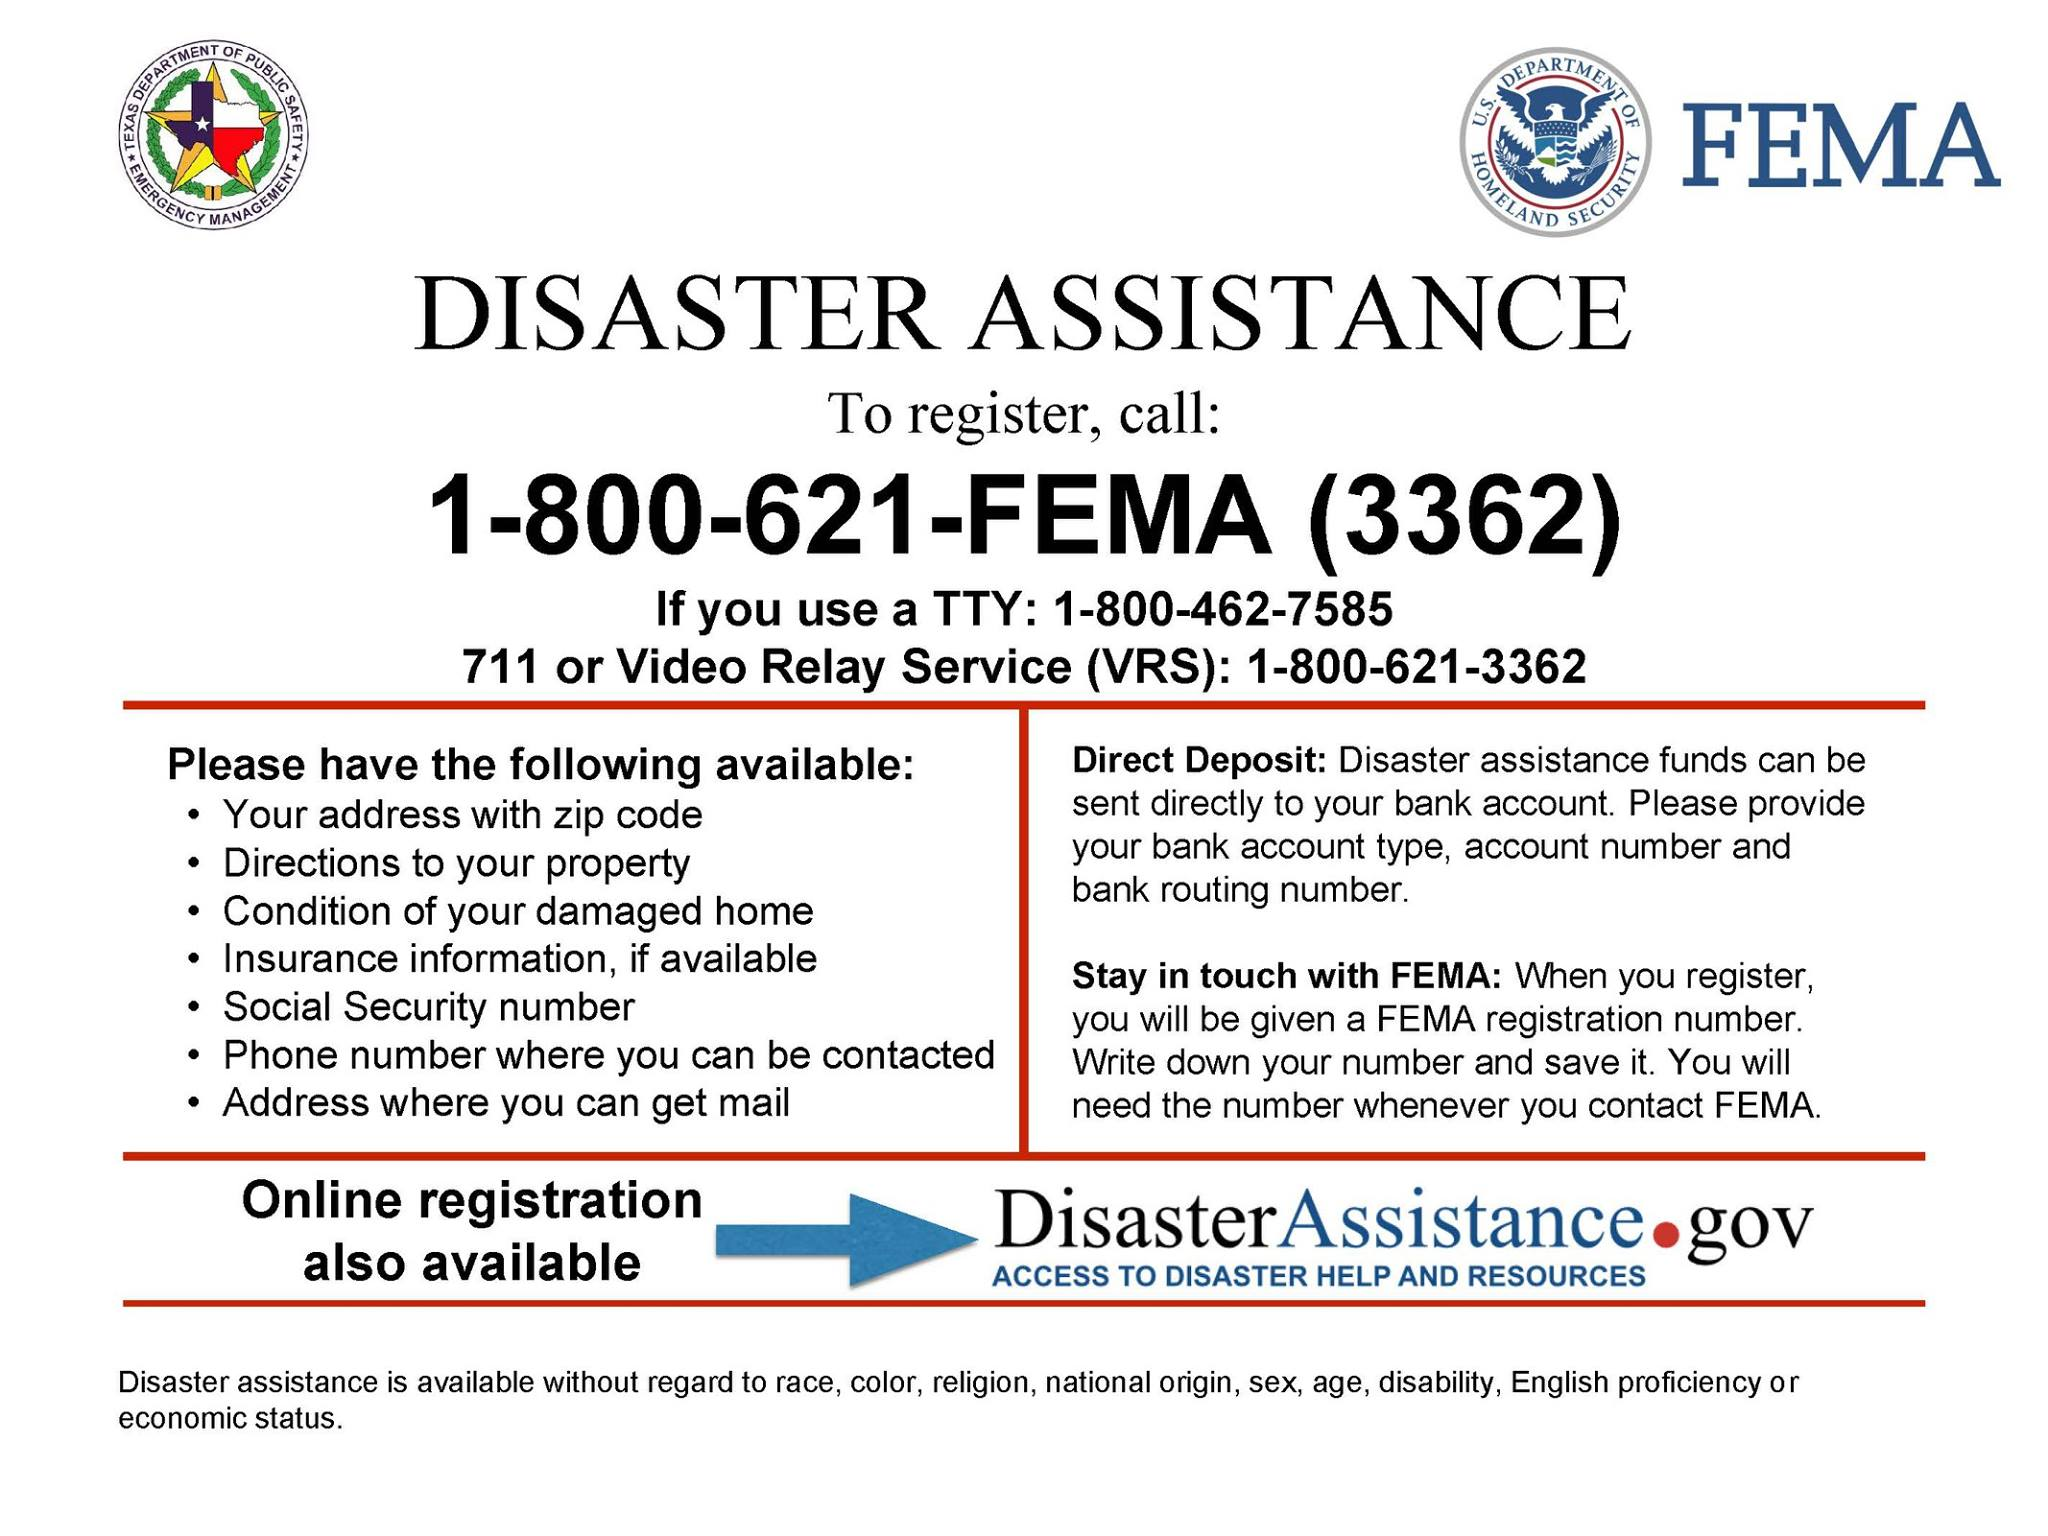 fema information la porte tx official website